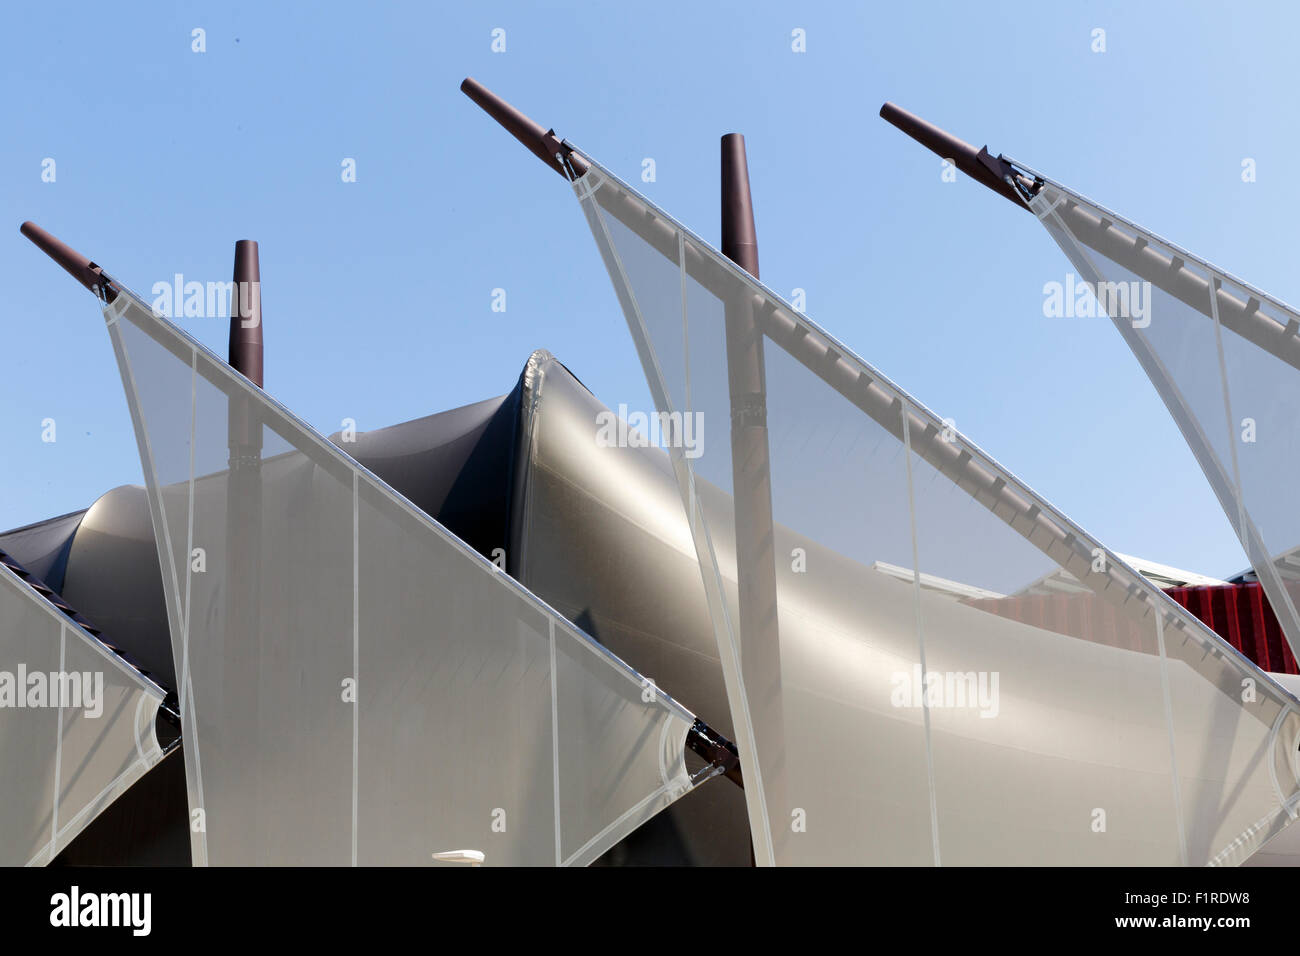 Milan, Italy, 12 August 2015: Detail of the Kuwait pavilion at the exhibition Expo 2015 Italy. - Stock Image